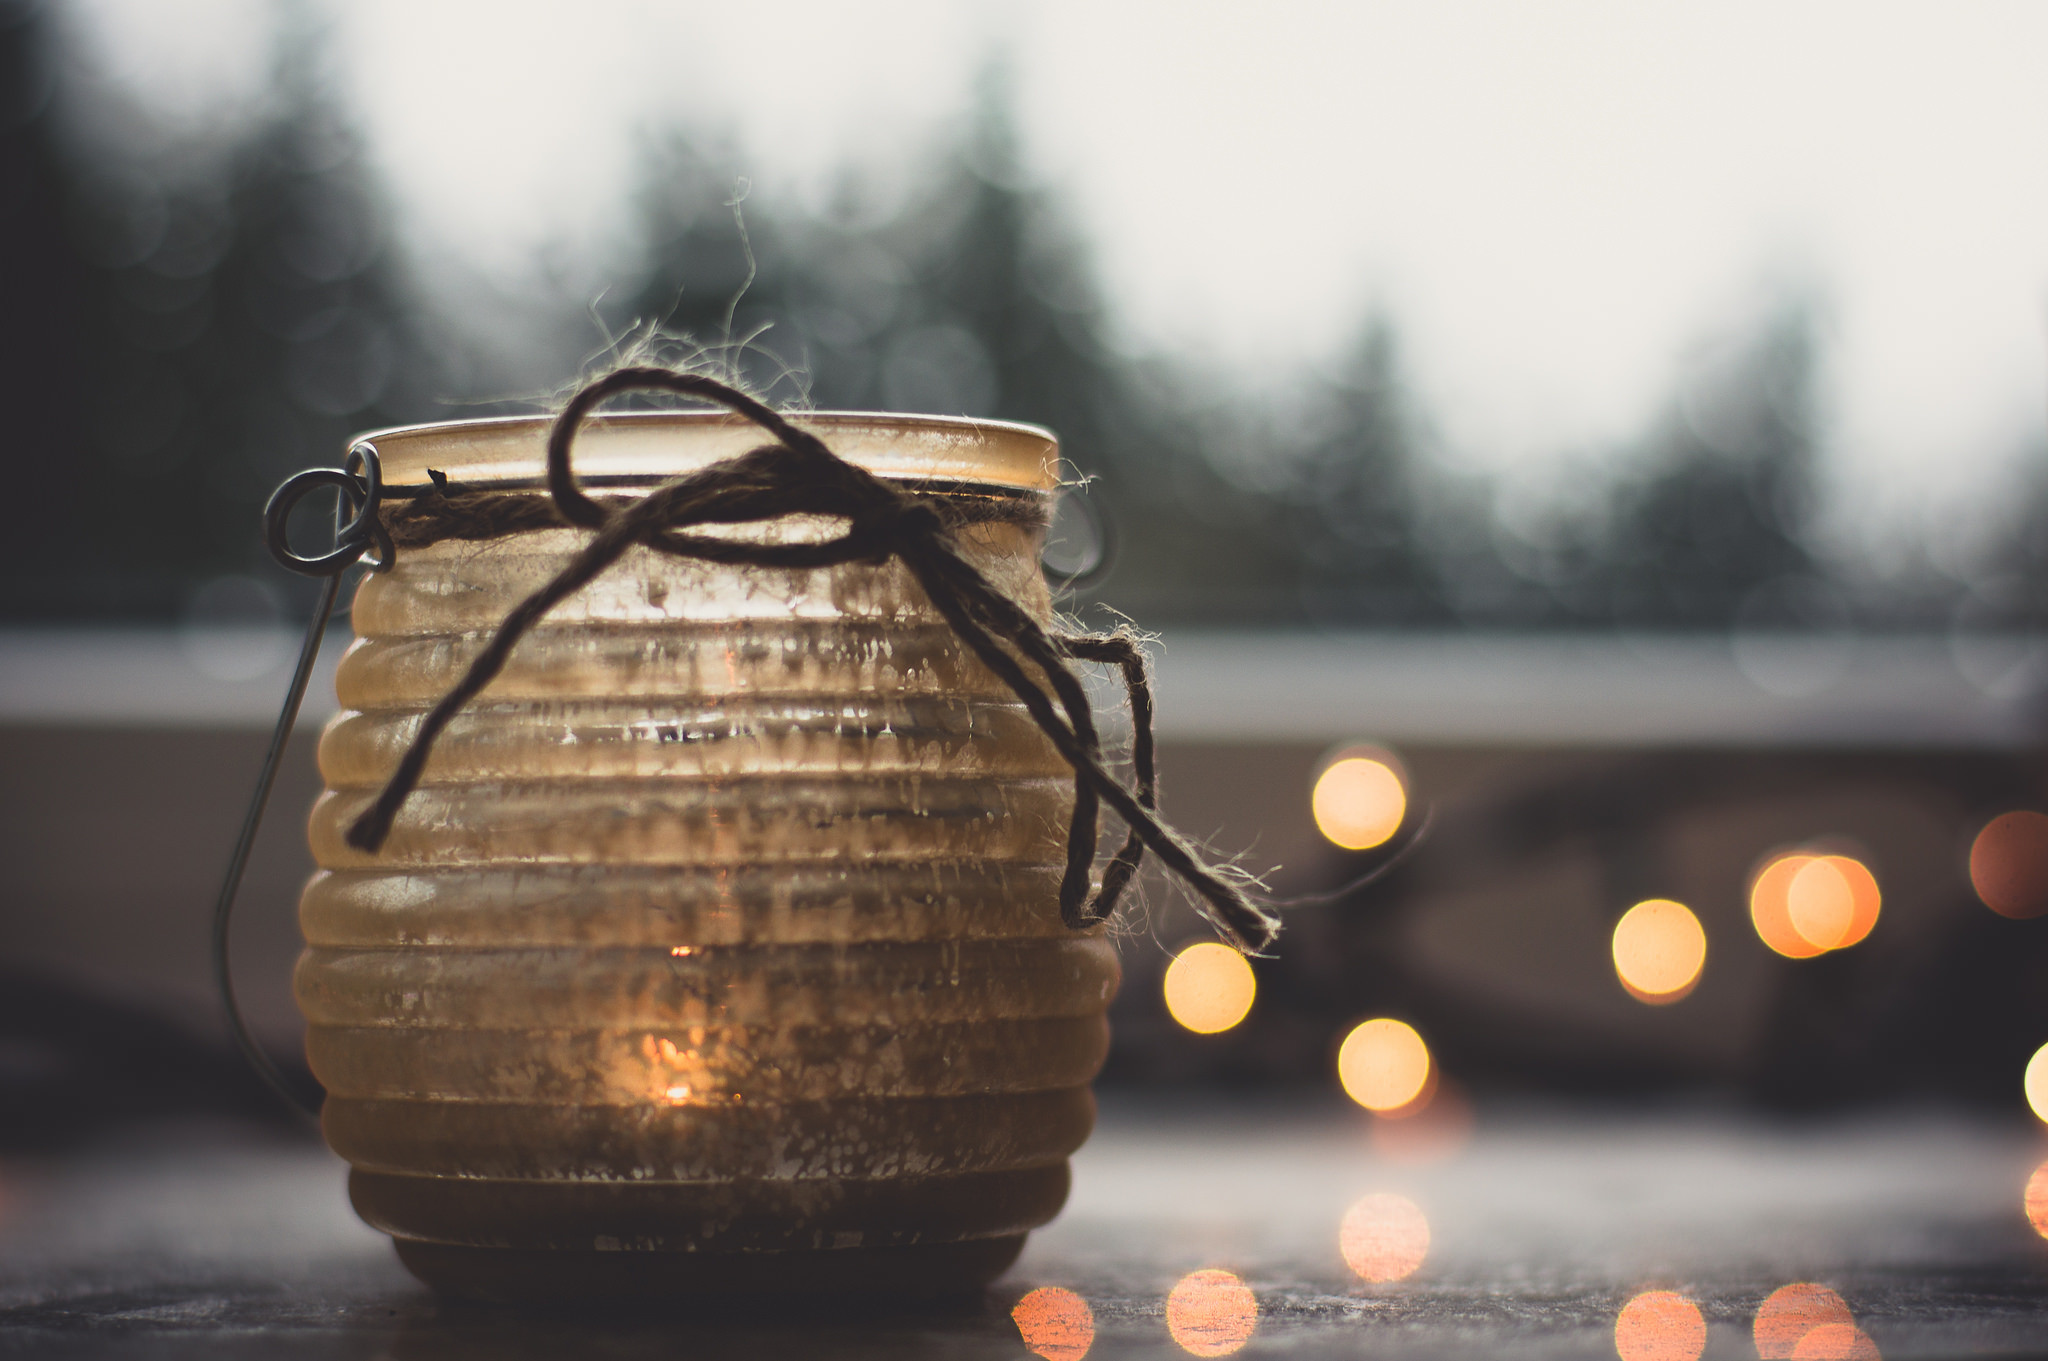 2048x1361 Winter moments wallpaper winter candle jar bokeh lights cozy warm